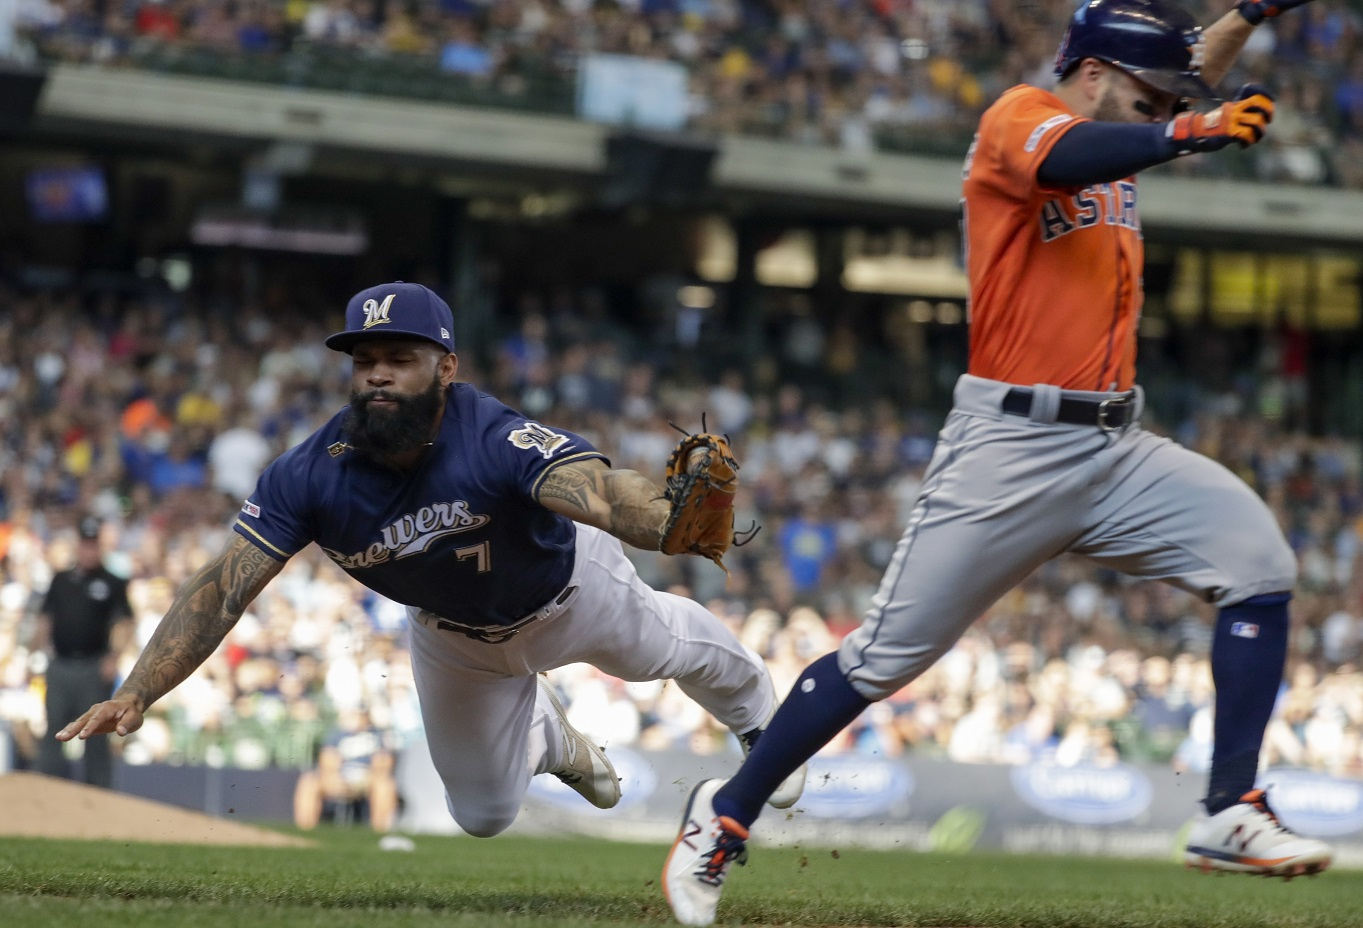 Springer's homer in 10th keys Astros' 3-2 win over Brewers